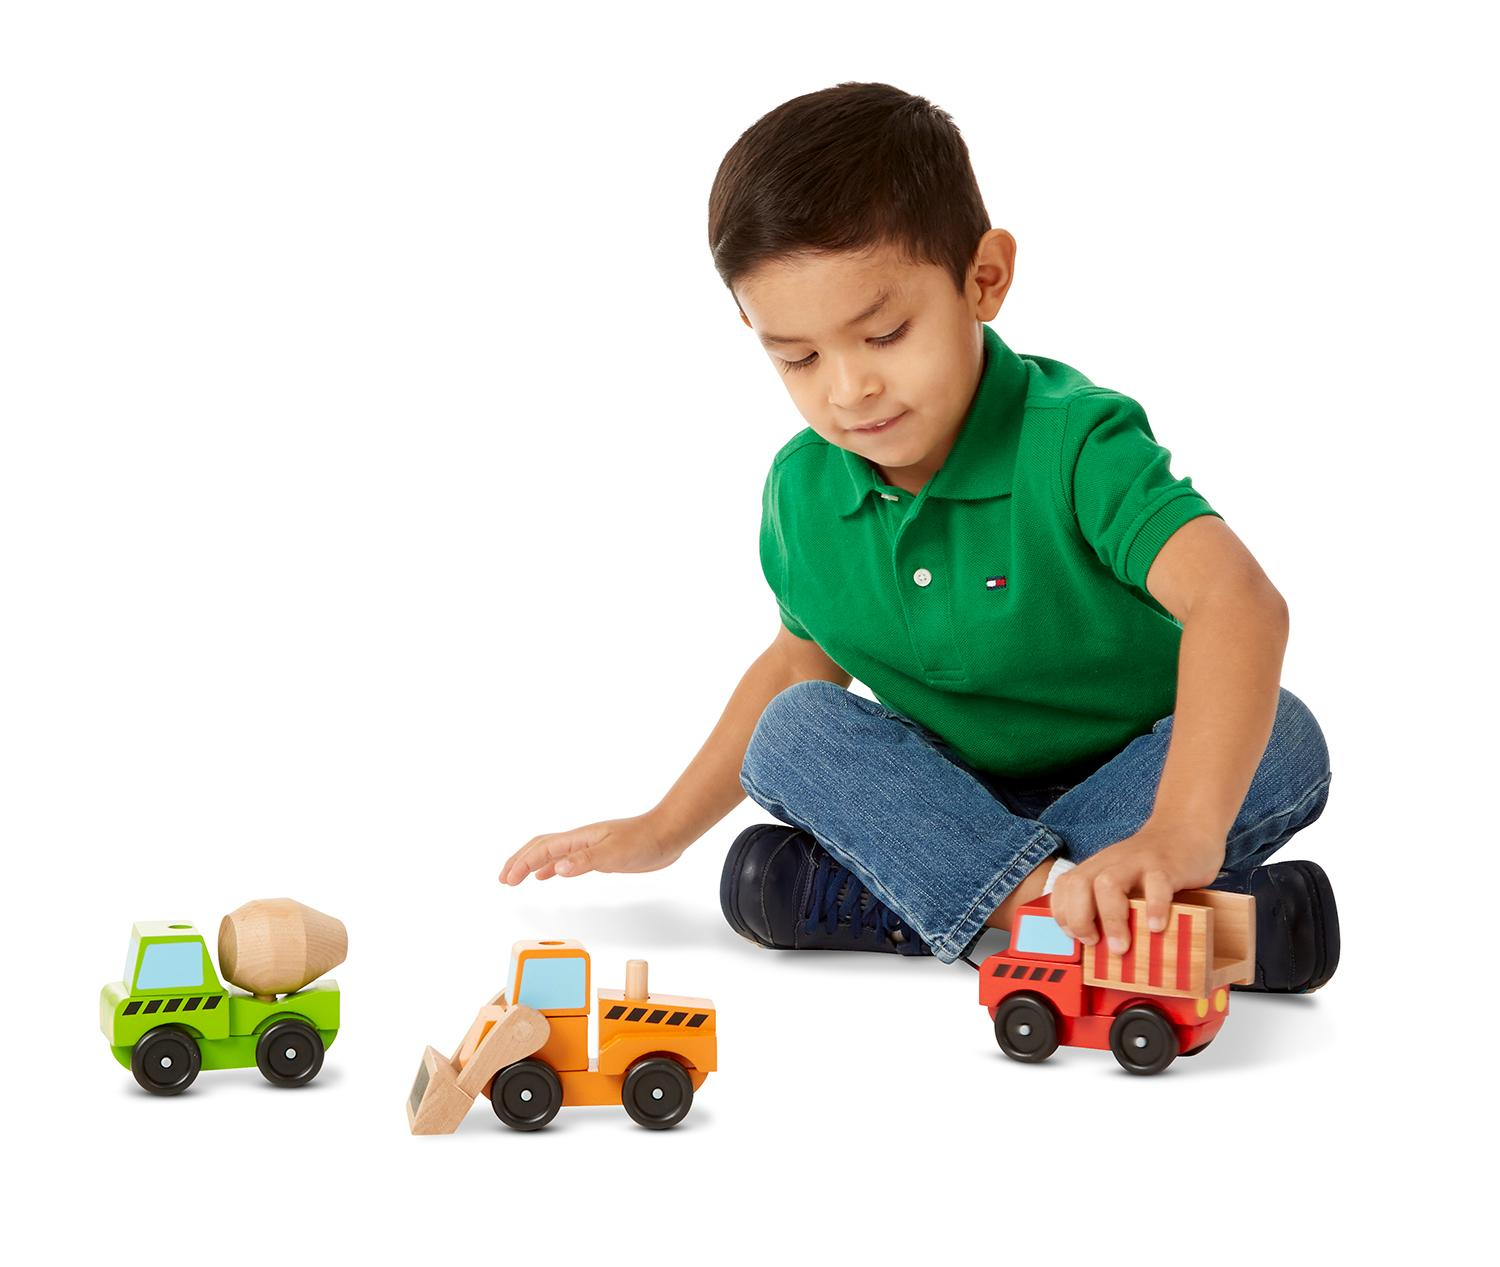 Construction Vehicles Wooden Toy Set: Melissa & Doug: Toys & Games